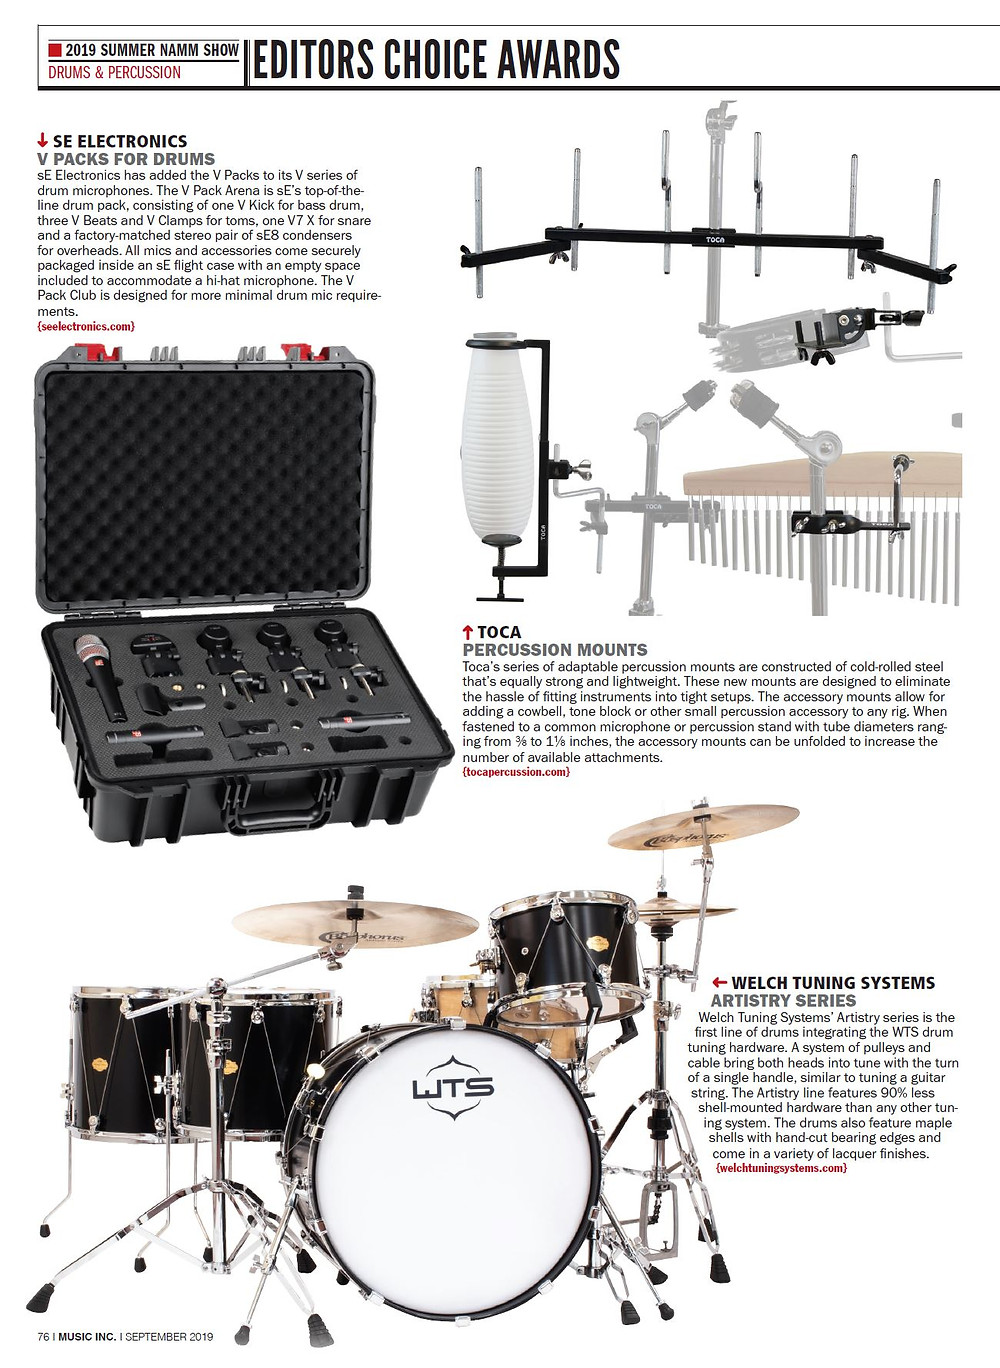 Welch Tuning Systems Receives Music Inc. Editors Choice